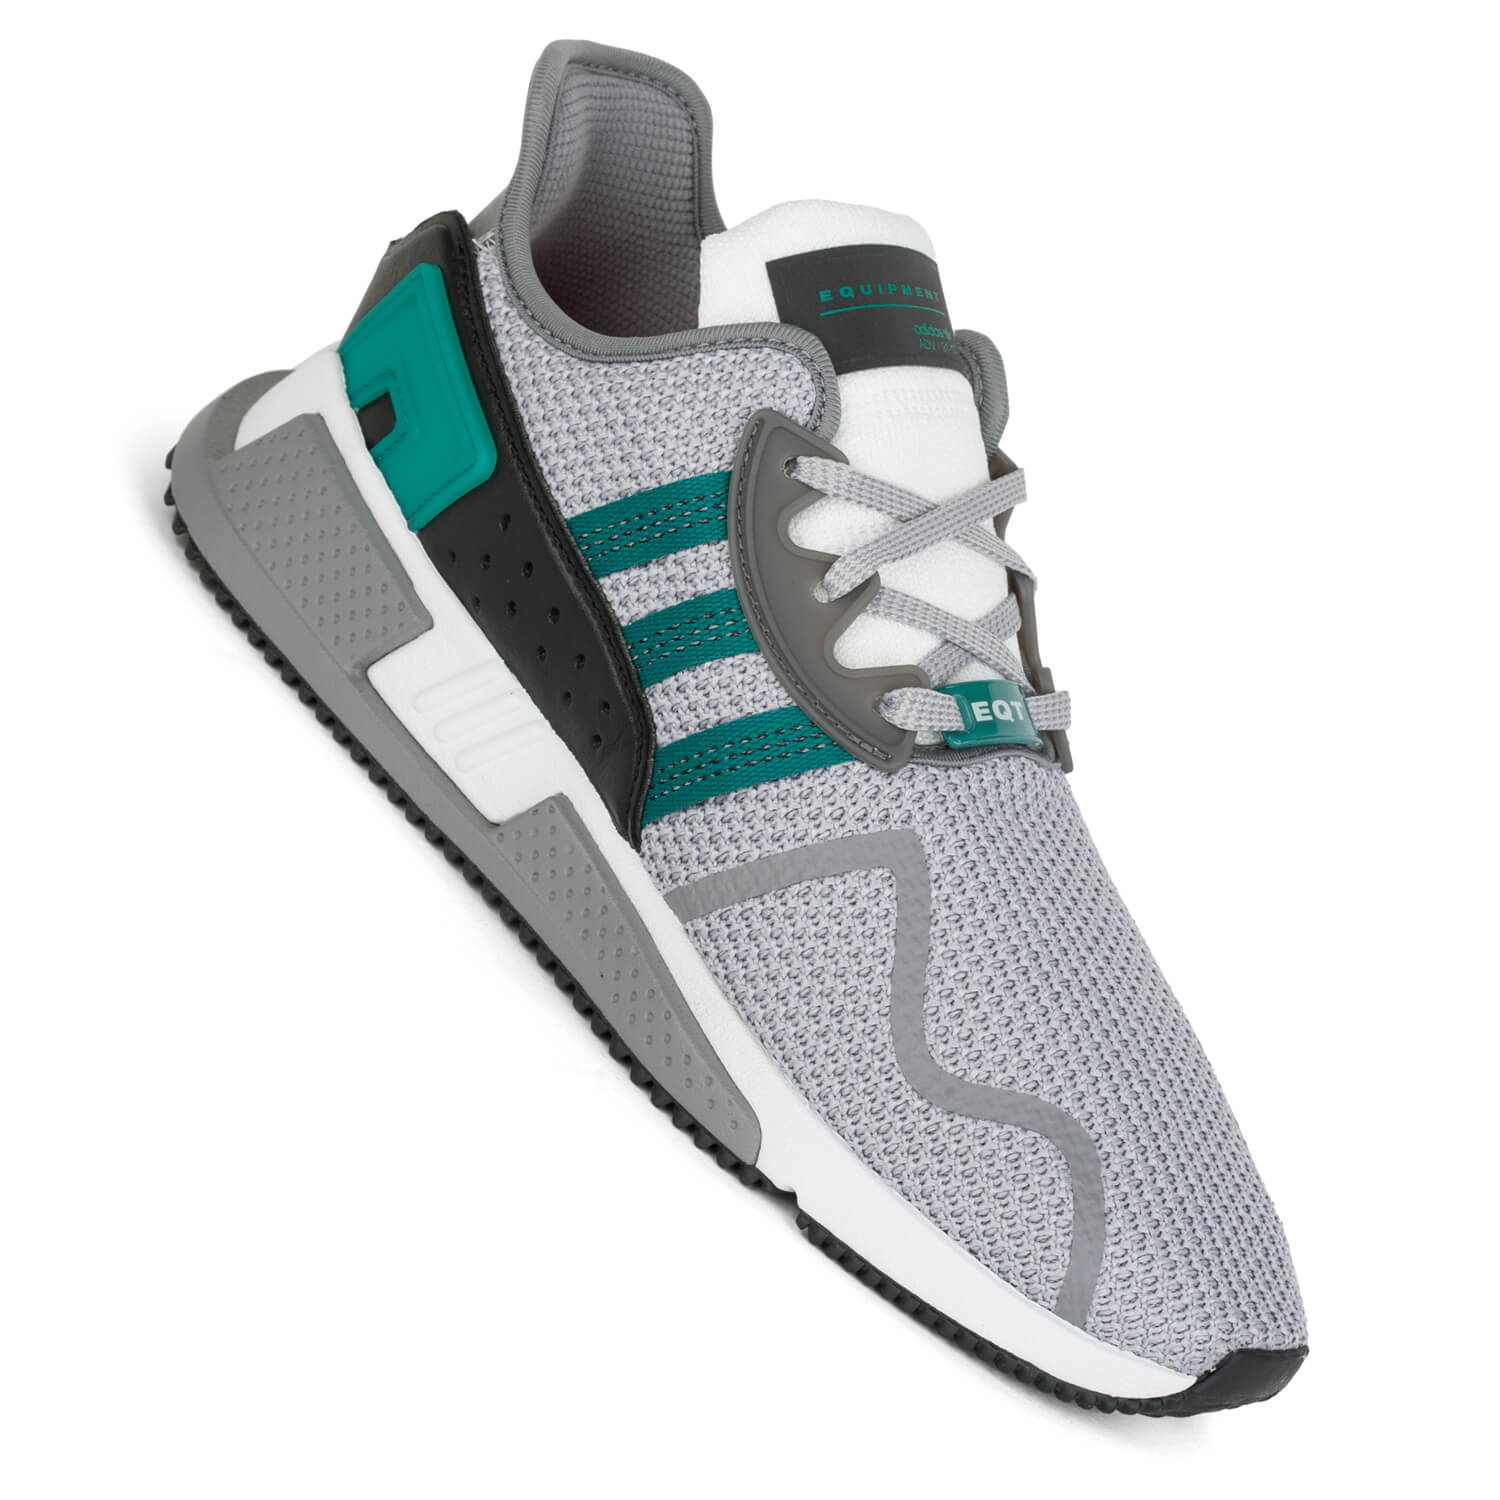 adidas eqt equipment cushion adv grey two green herren. Black Bedroom Furniture Sets. Home Design Ideas